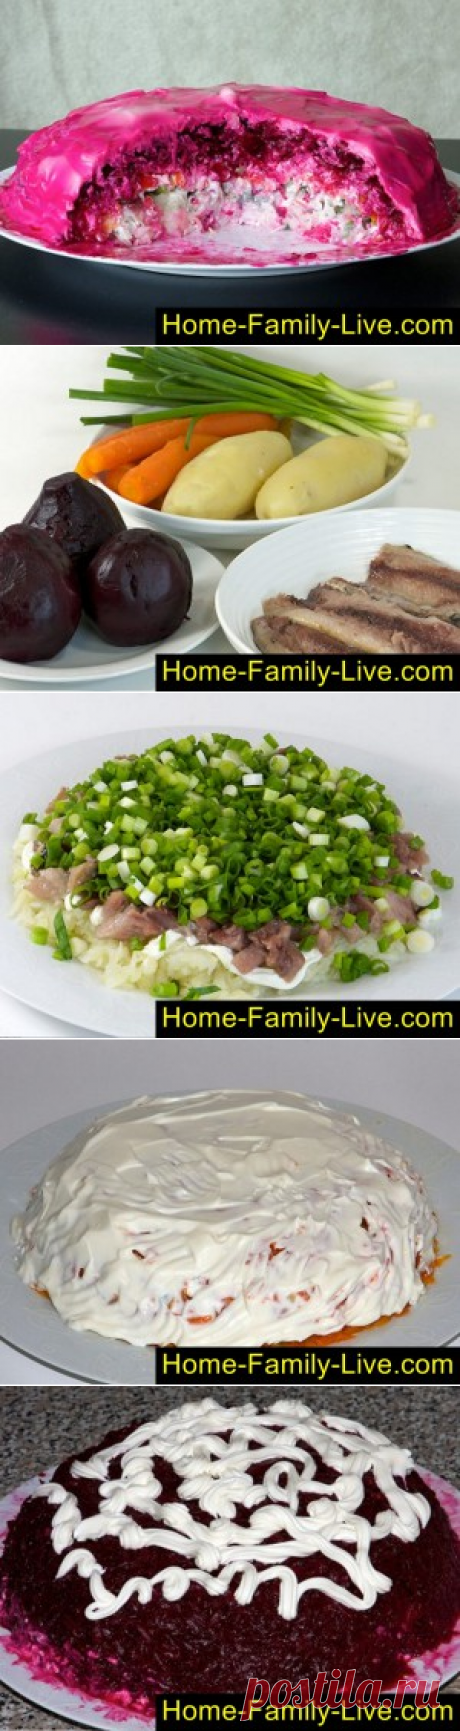 For those who likes to cook a herring under the fur coat\/website with step-by-step recipes with a photo